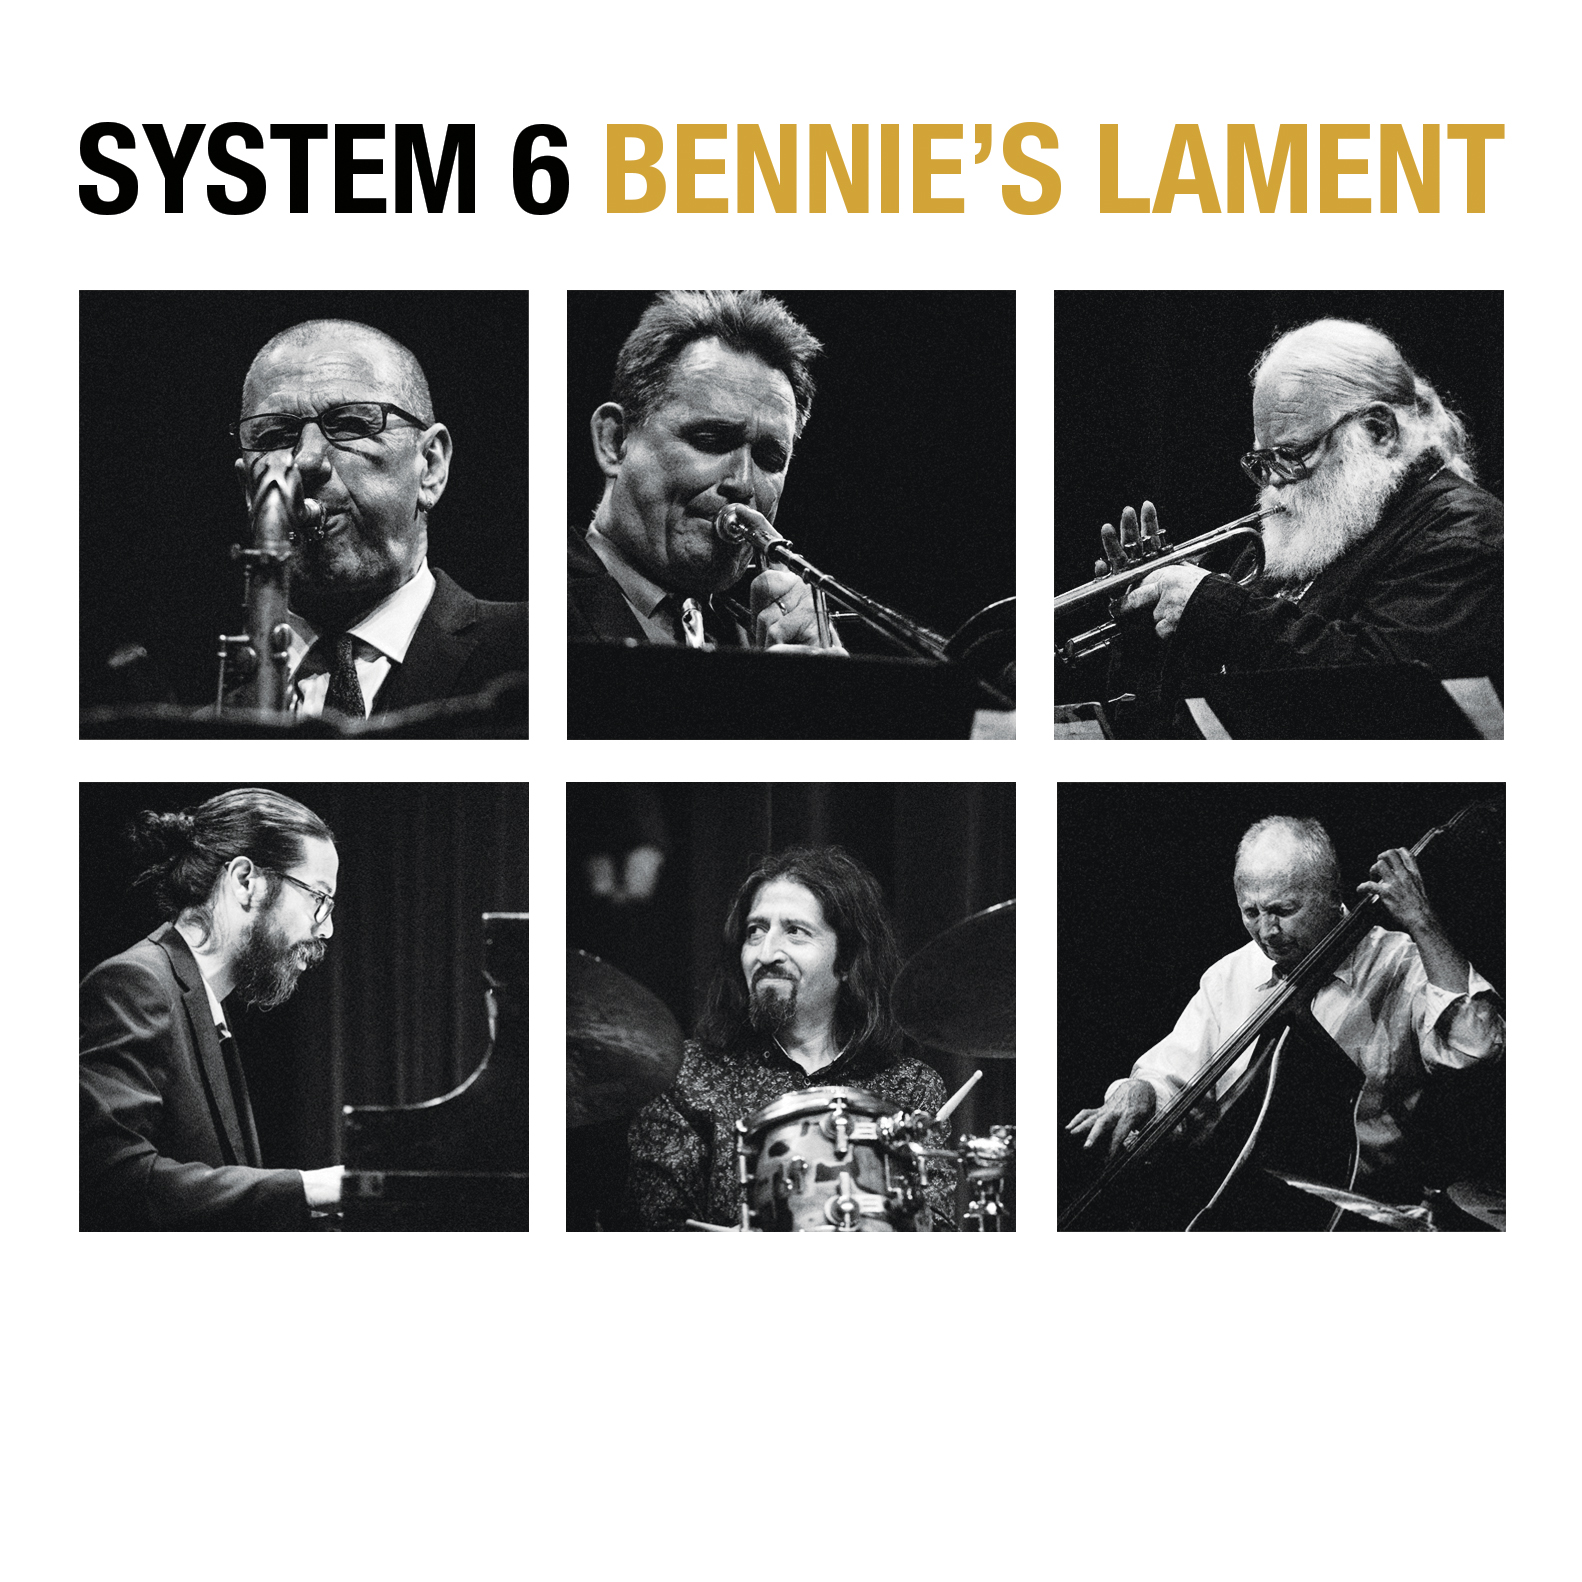 NEW RELEASE: Saxophonist Benn Clatworthy and System 6 to Release BENNIE'S LAMENT